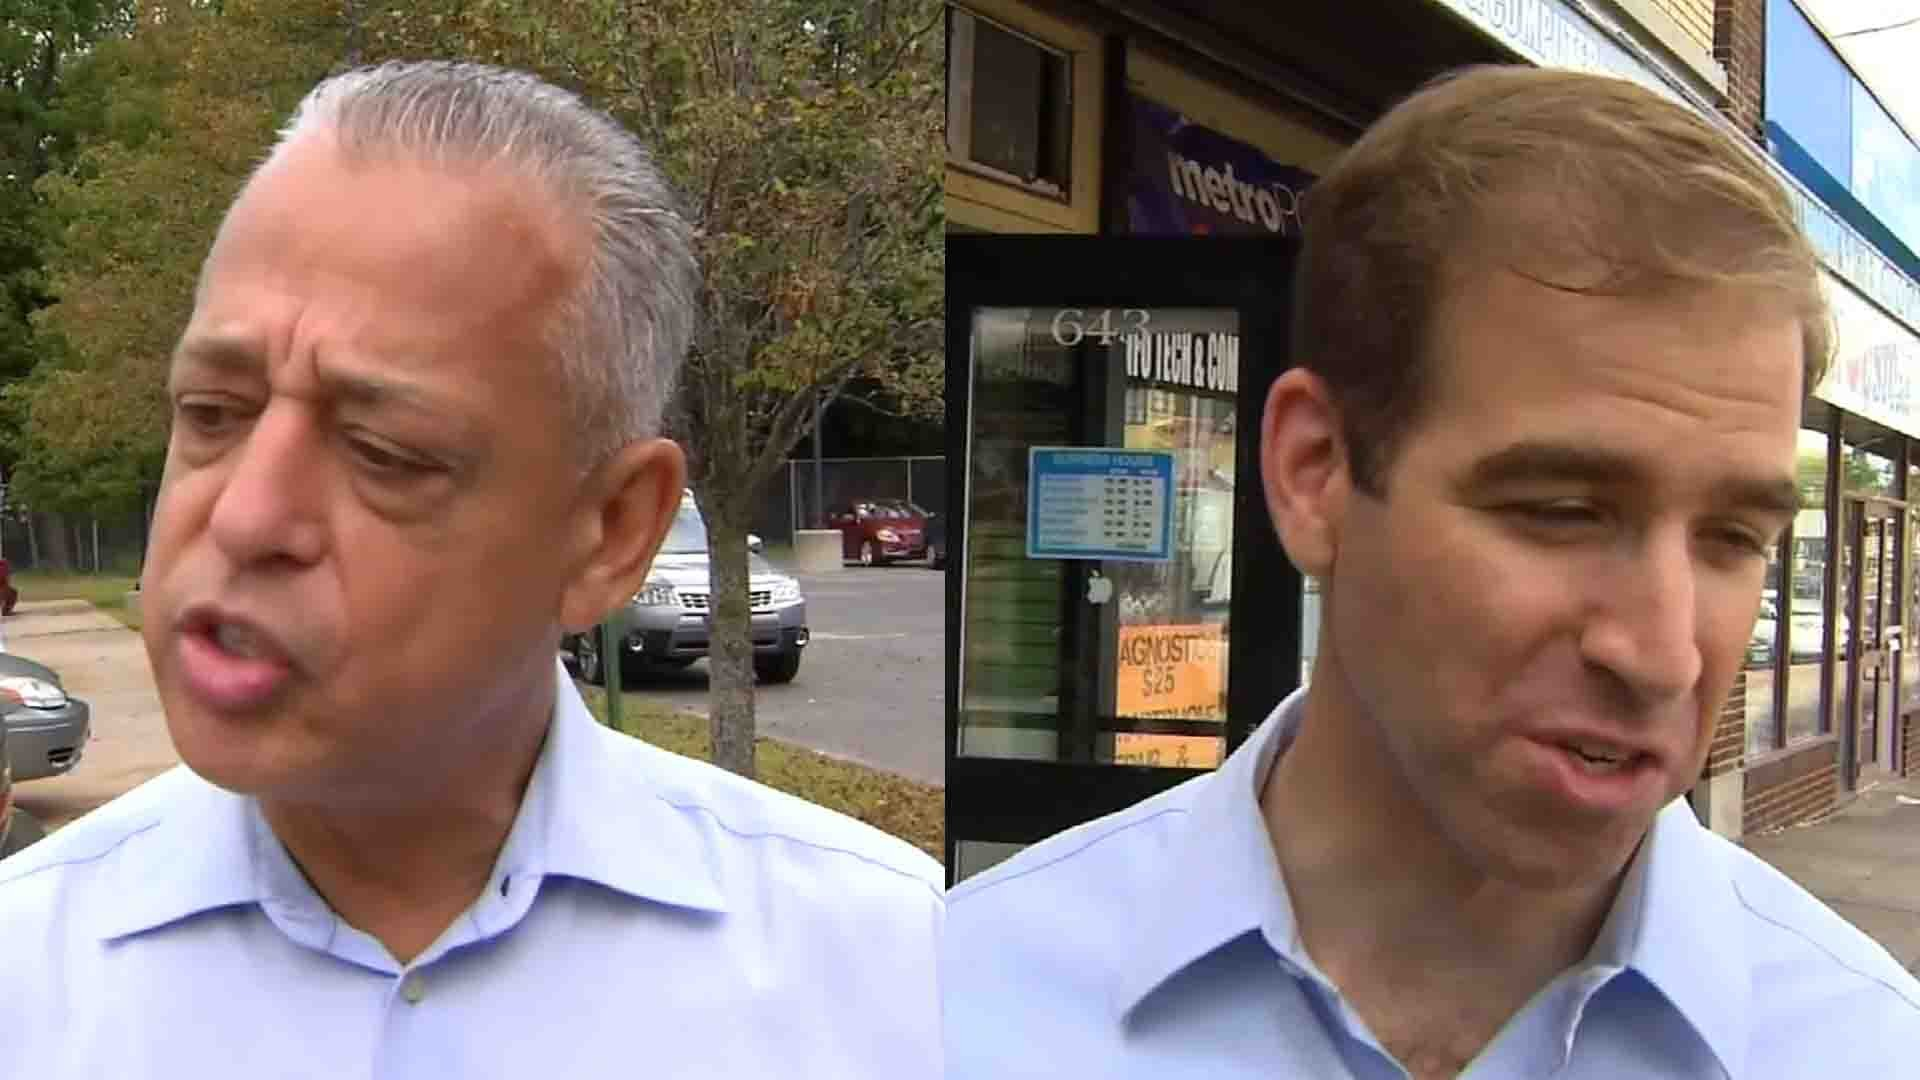 Mayor Pedro Segarra and challenger Luke Bronin. (WFSB photos)